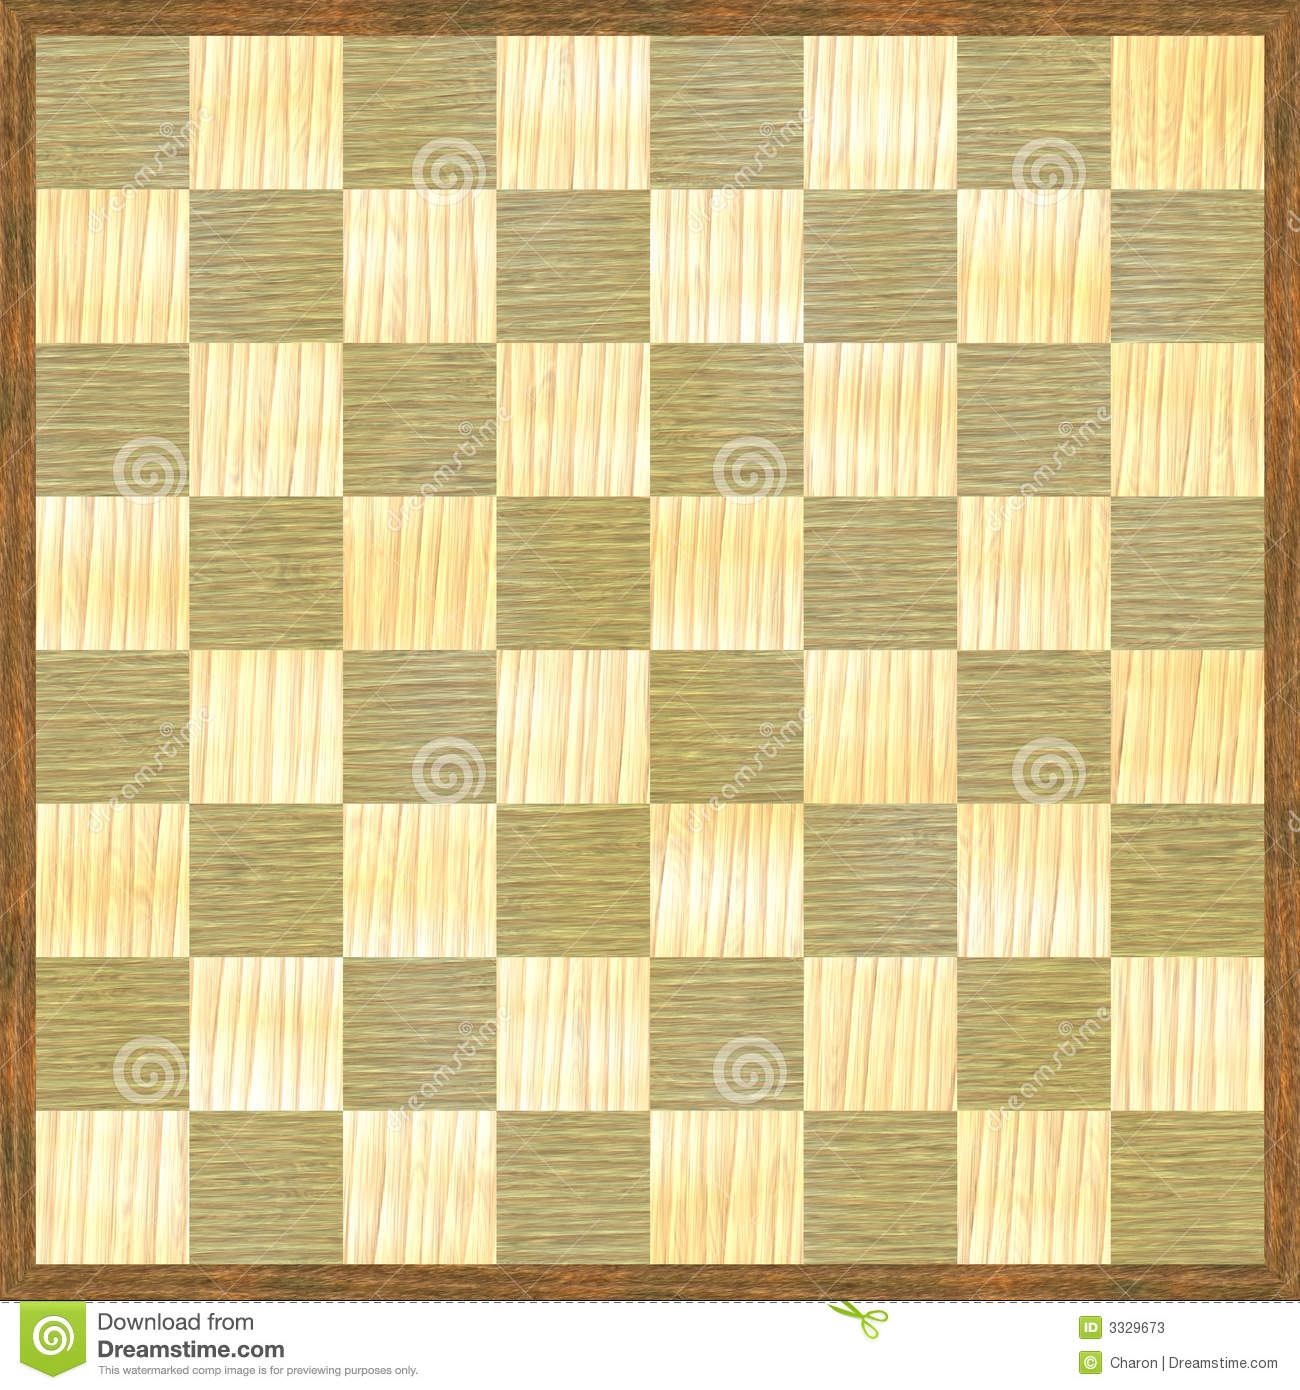 Wooden checker board wooden checkerboard in - Chessboard Checker Pattern Wood Texture Stock Photos